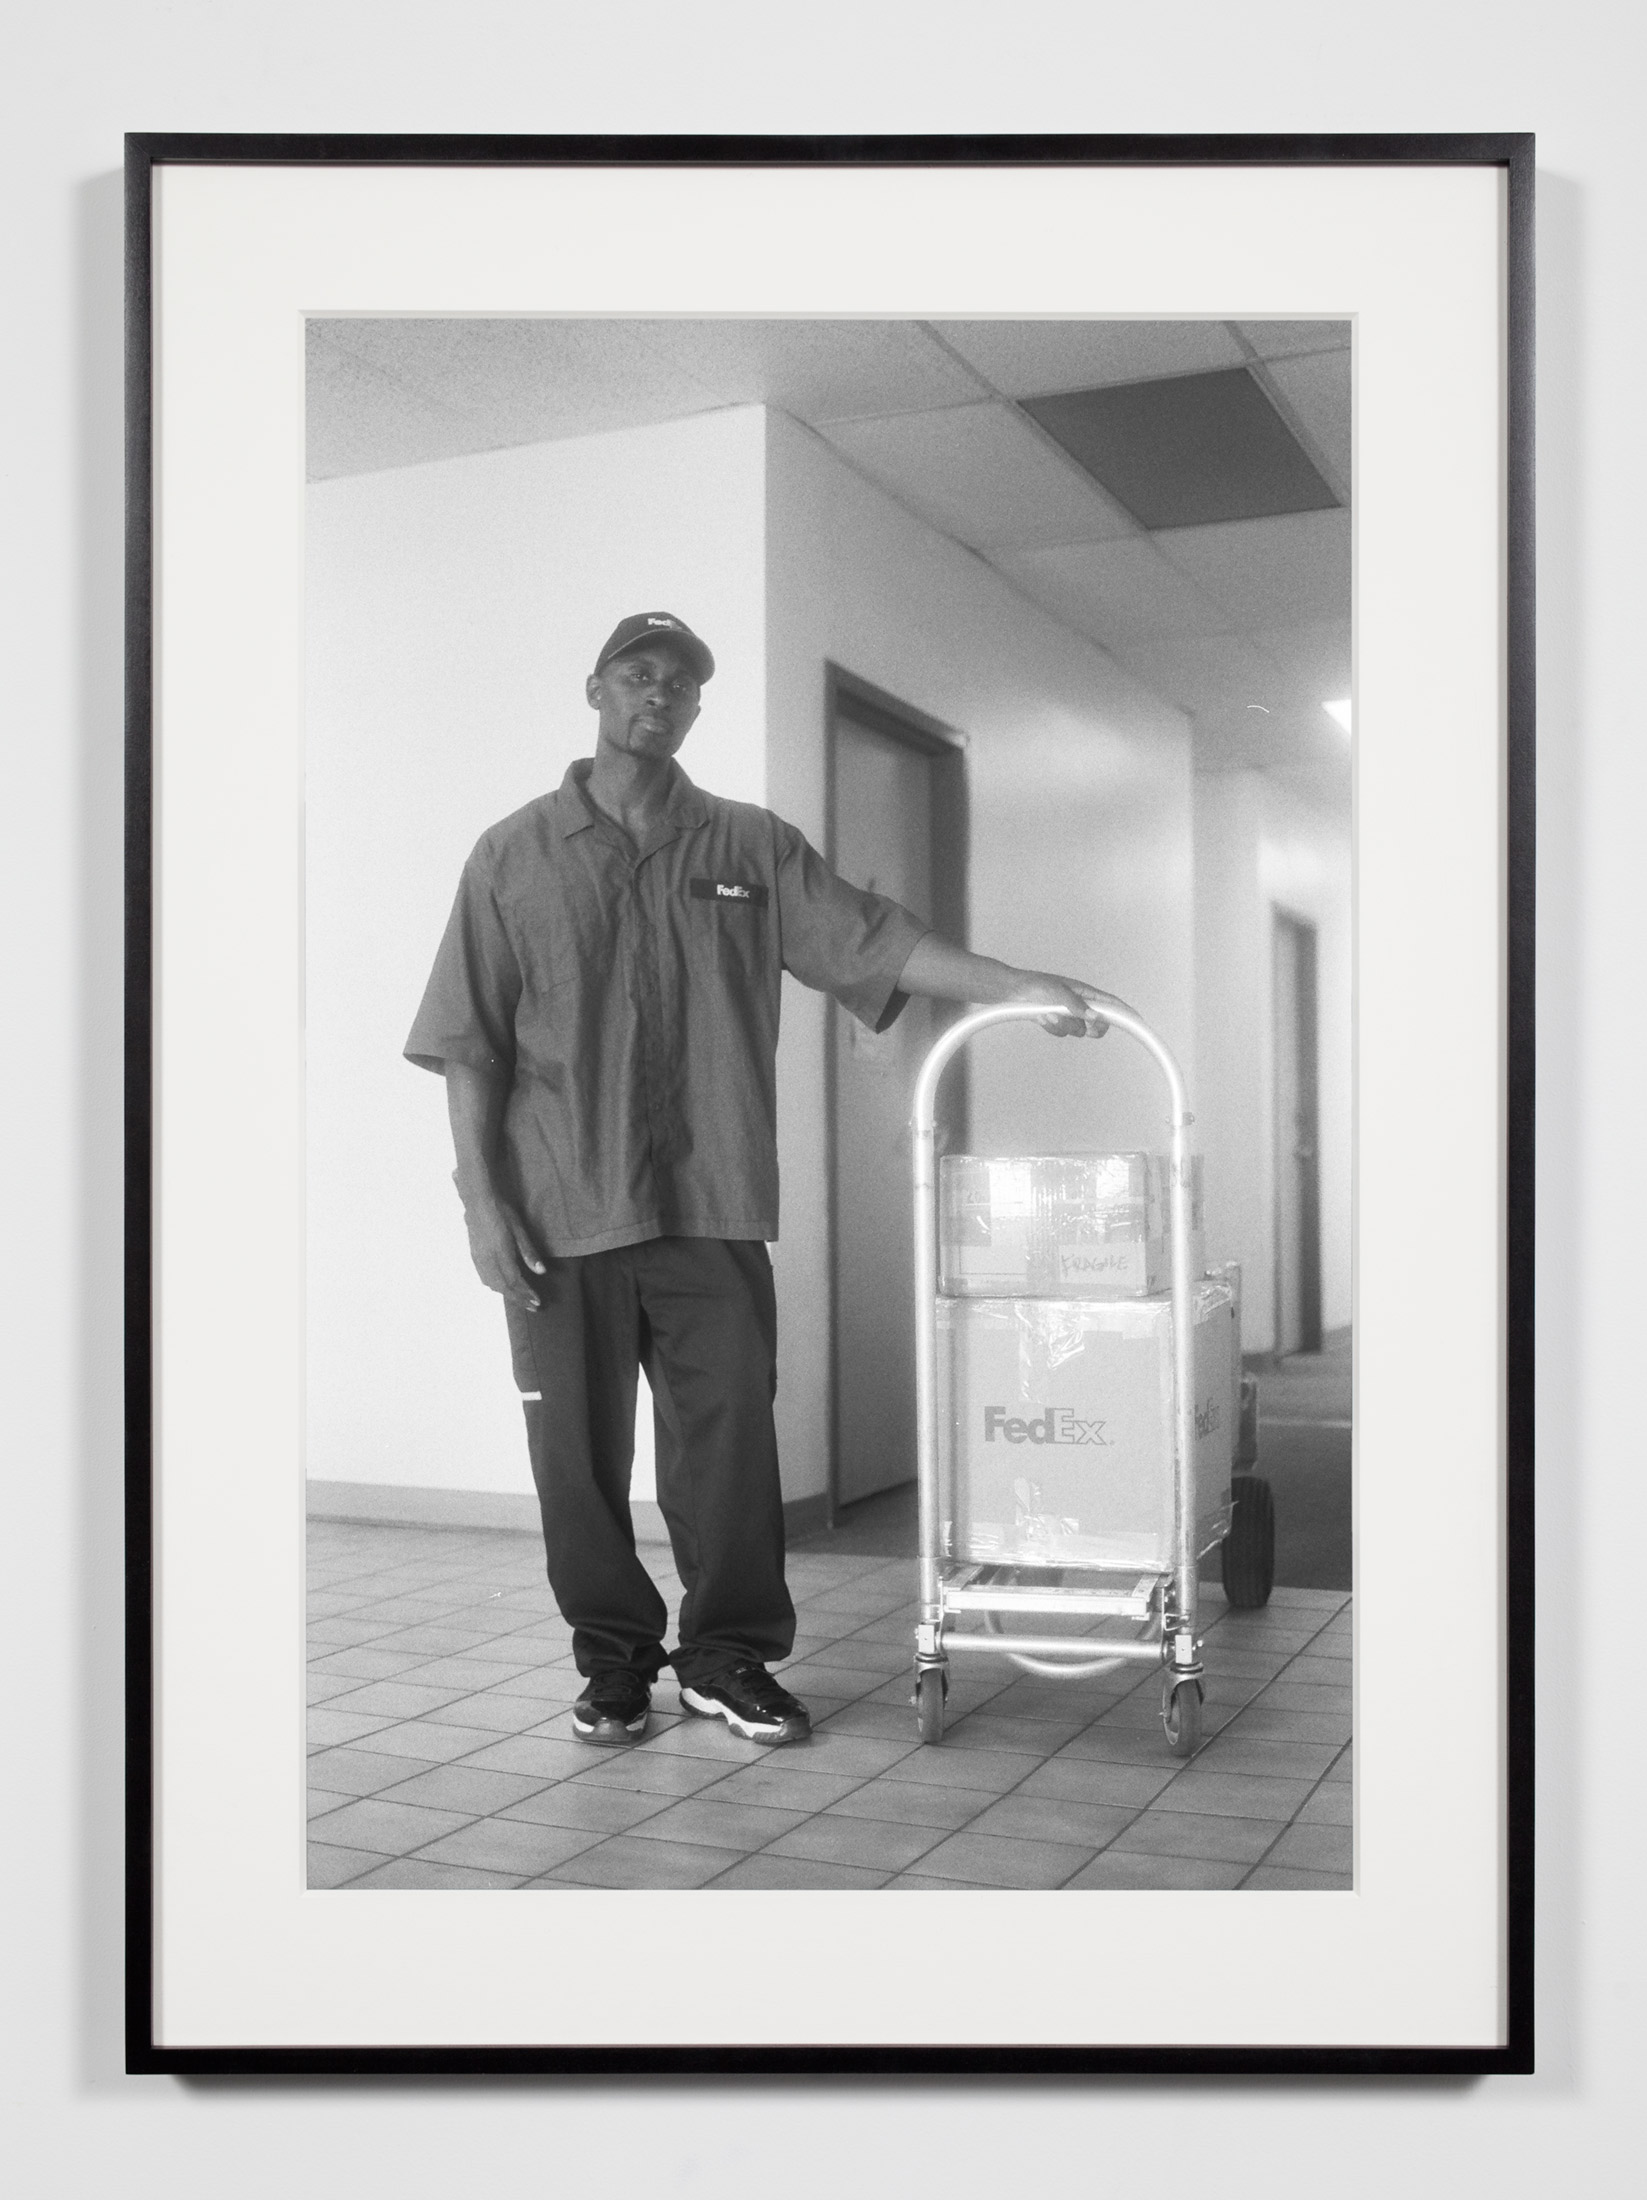 FedEx Courier (DE), Los Angeles, California, September 12, 2008    2009   Epson Ultrachrome K3 archival ink jet print on Hahnemühle Photo Rag paper  36 3/8 x 26 3/8 inches   Industrial Portraits, 2008–